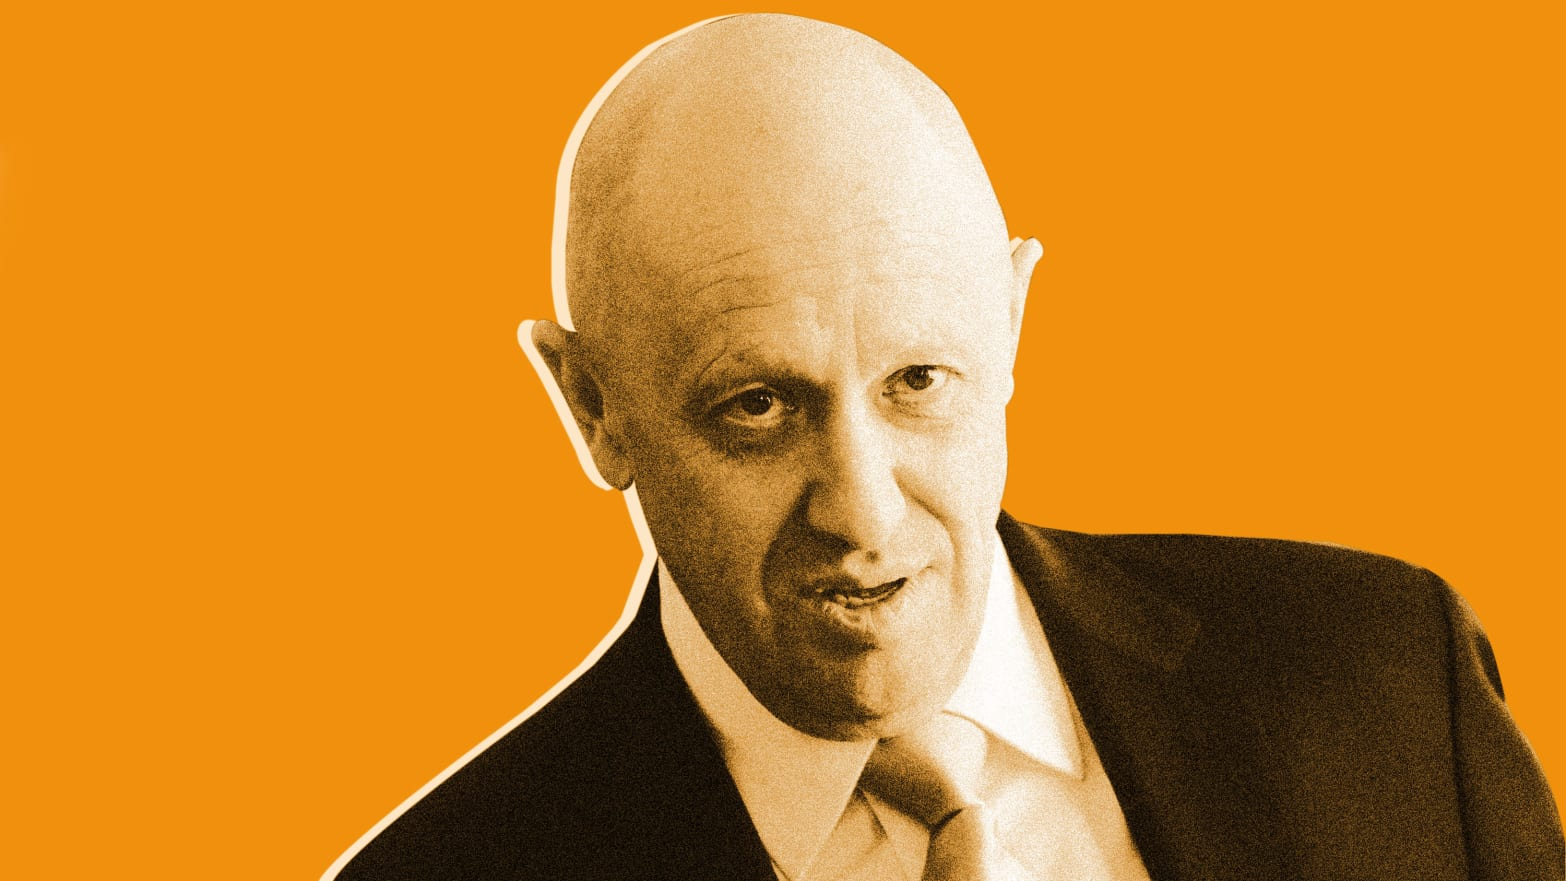 Yevgeny Prigozhin's Empire at the Center of the CAR Murders